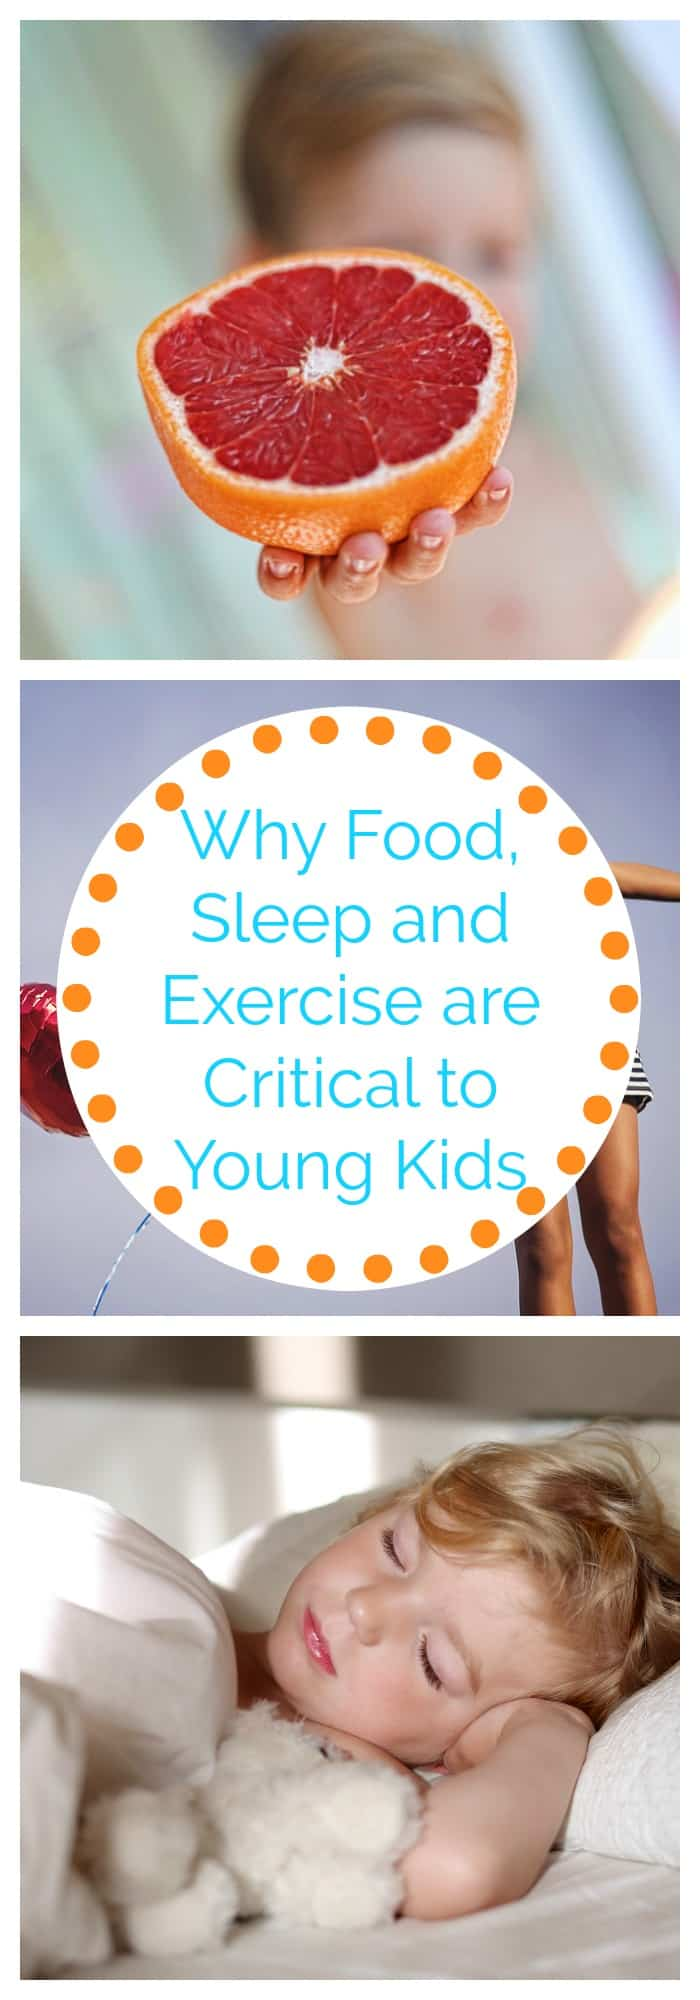 Parenting-Why Food, Sleep and Exercise are Critical to Young Kids